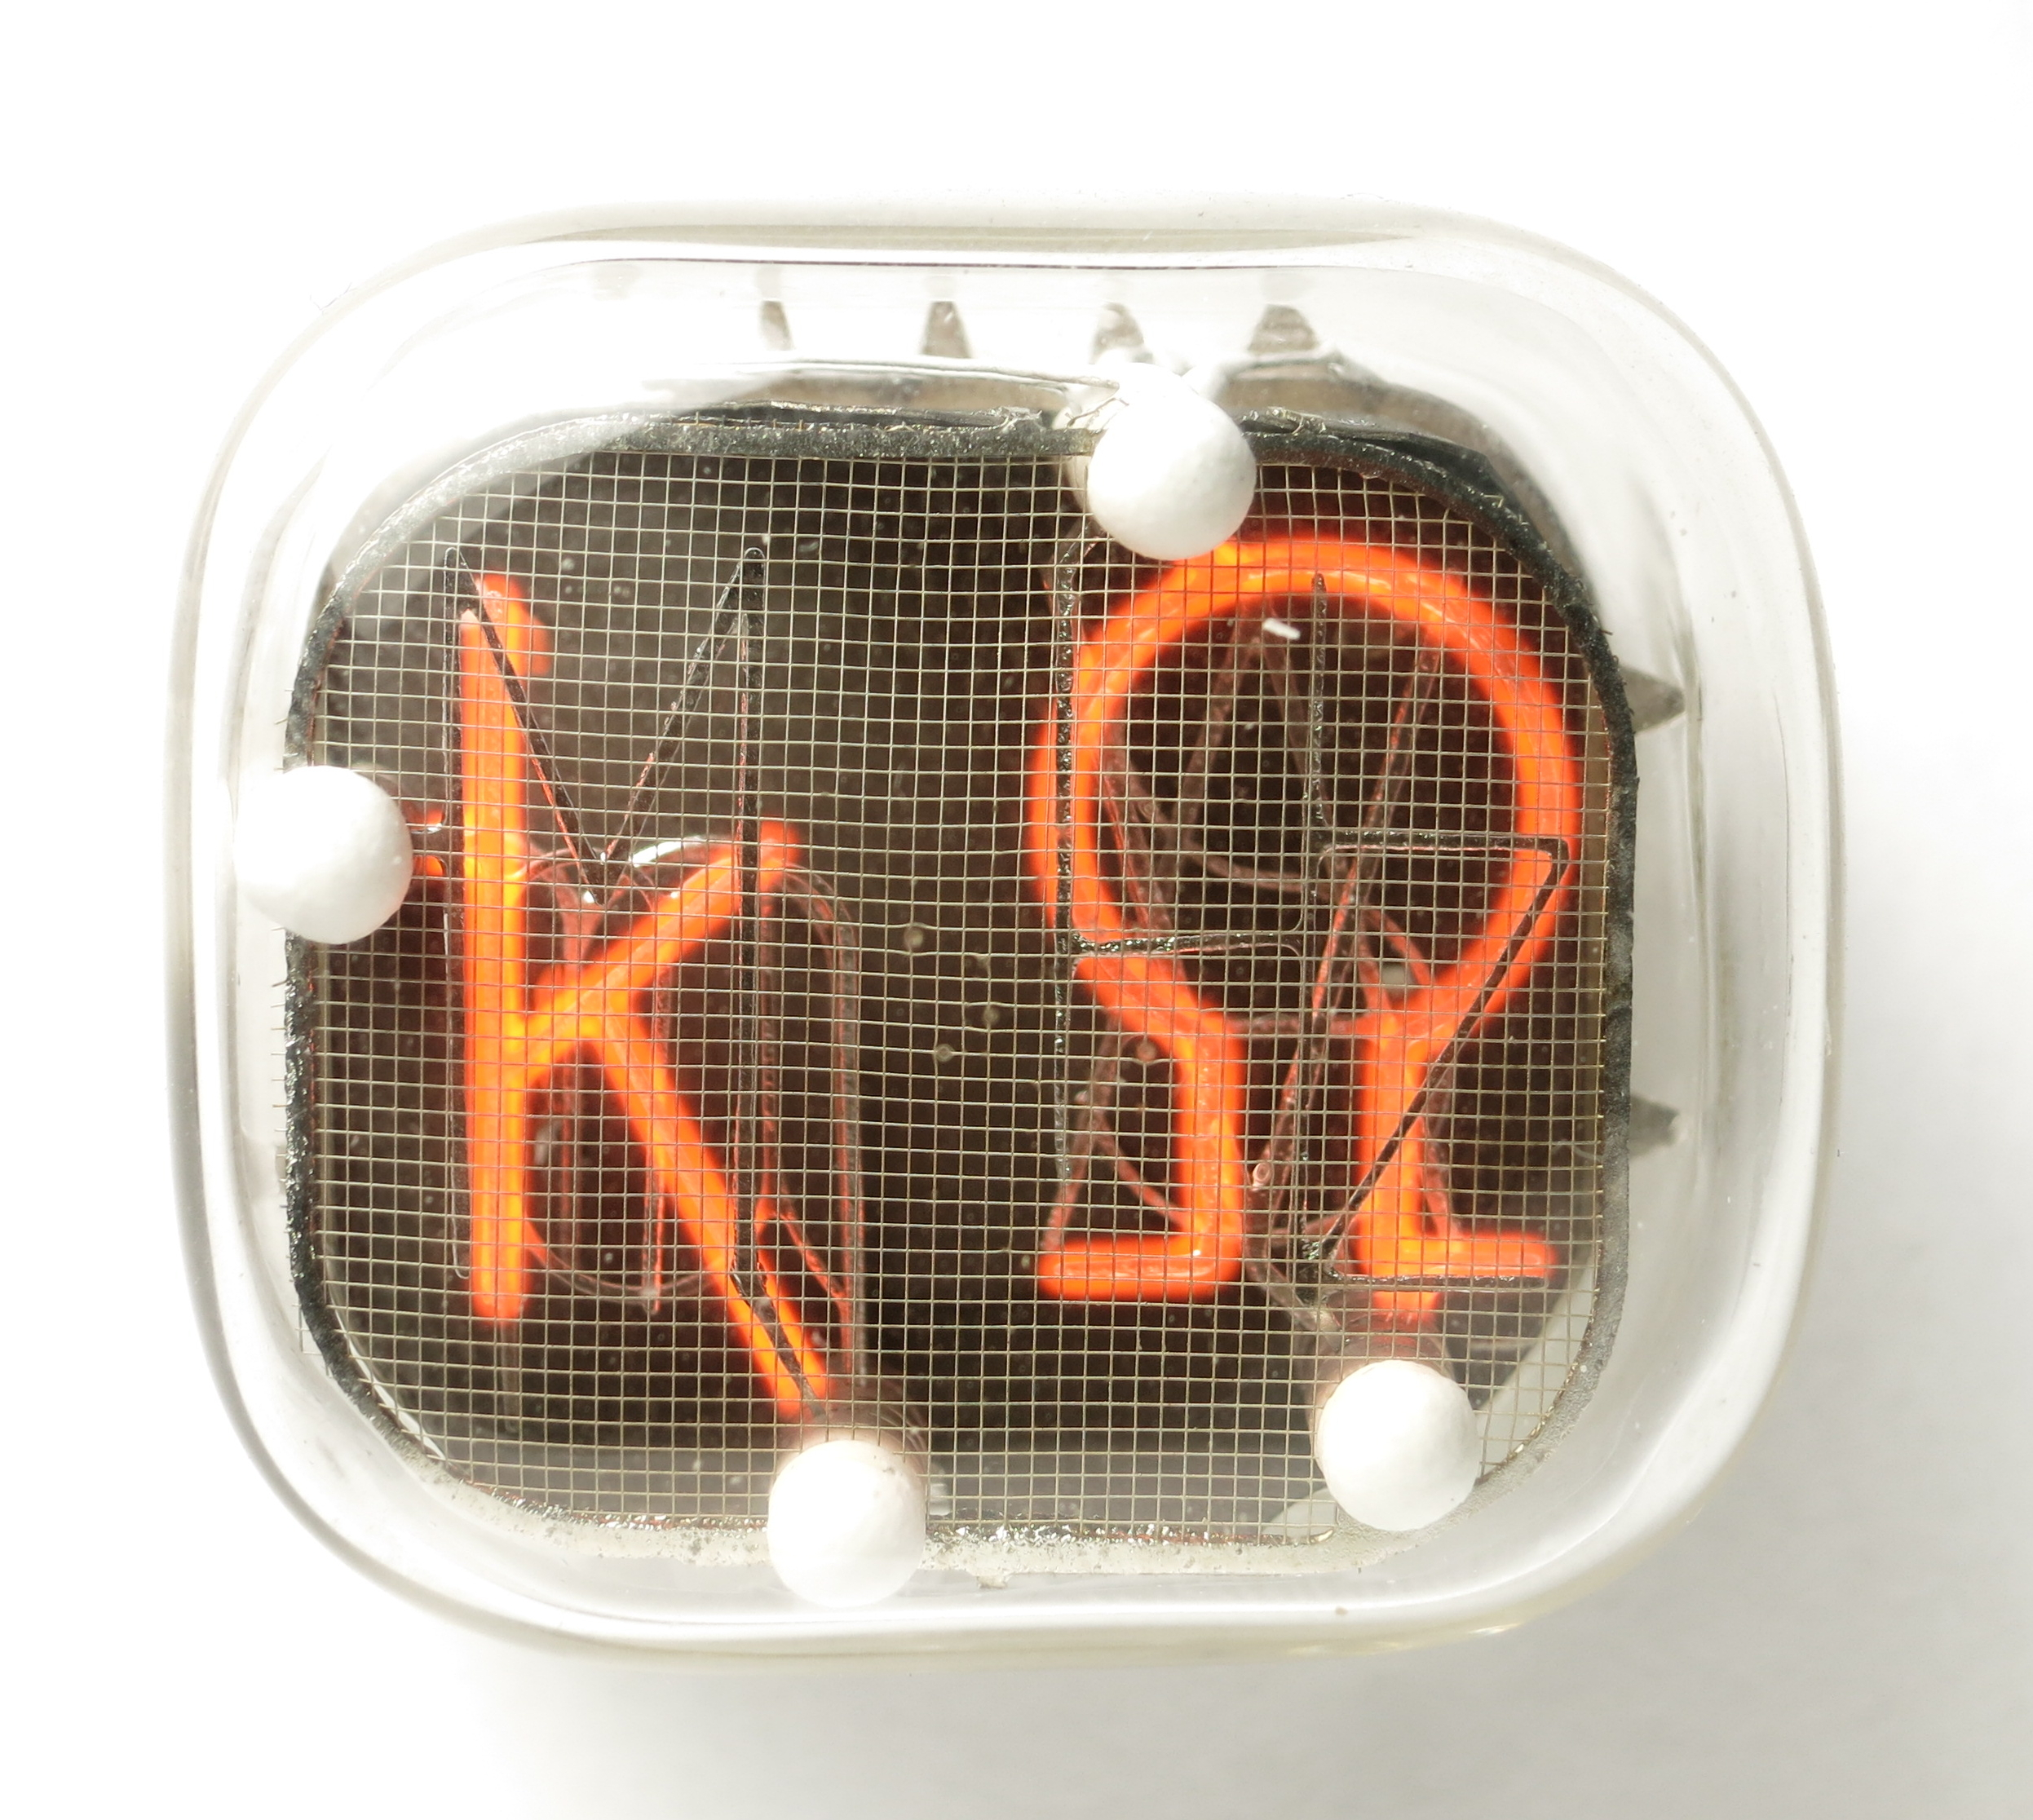 The combined symbol 'kΩ' of the IN-XX